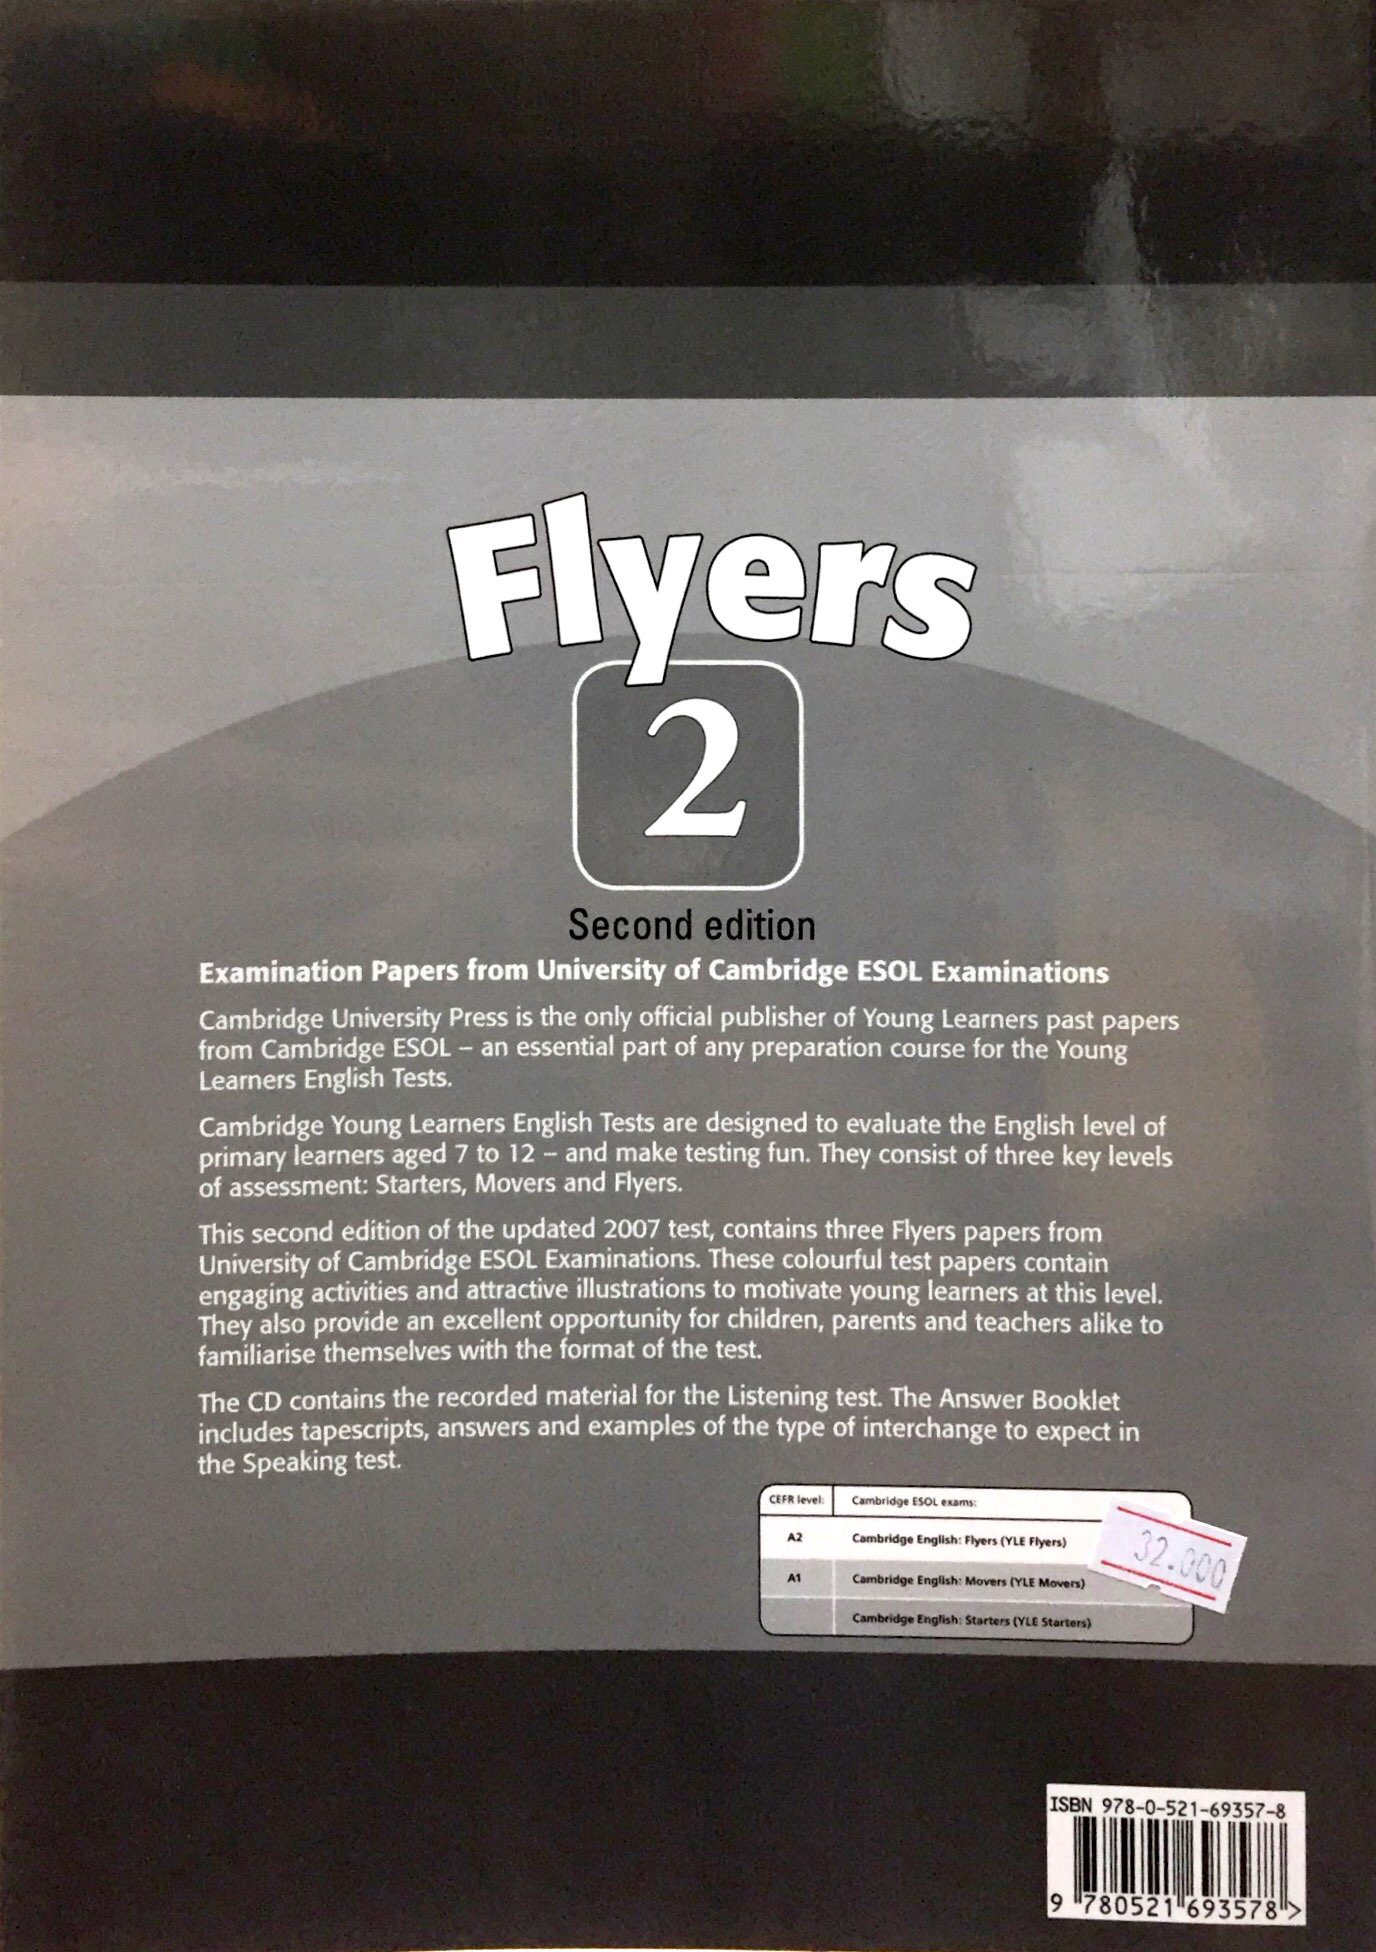 Cambridge Young Learners English Tests 2 Second edition Flyers 2 Answer Booklet